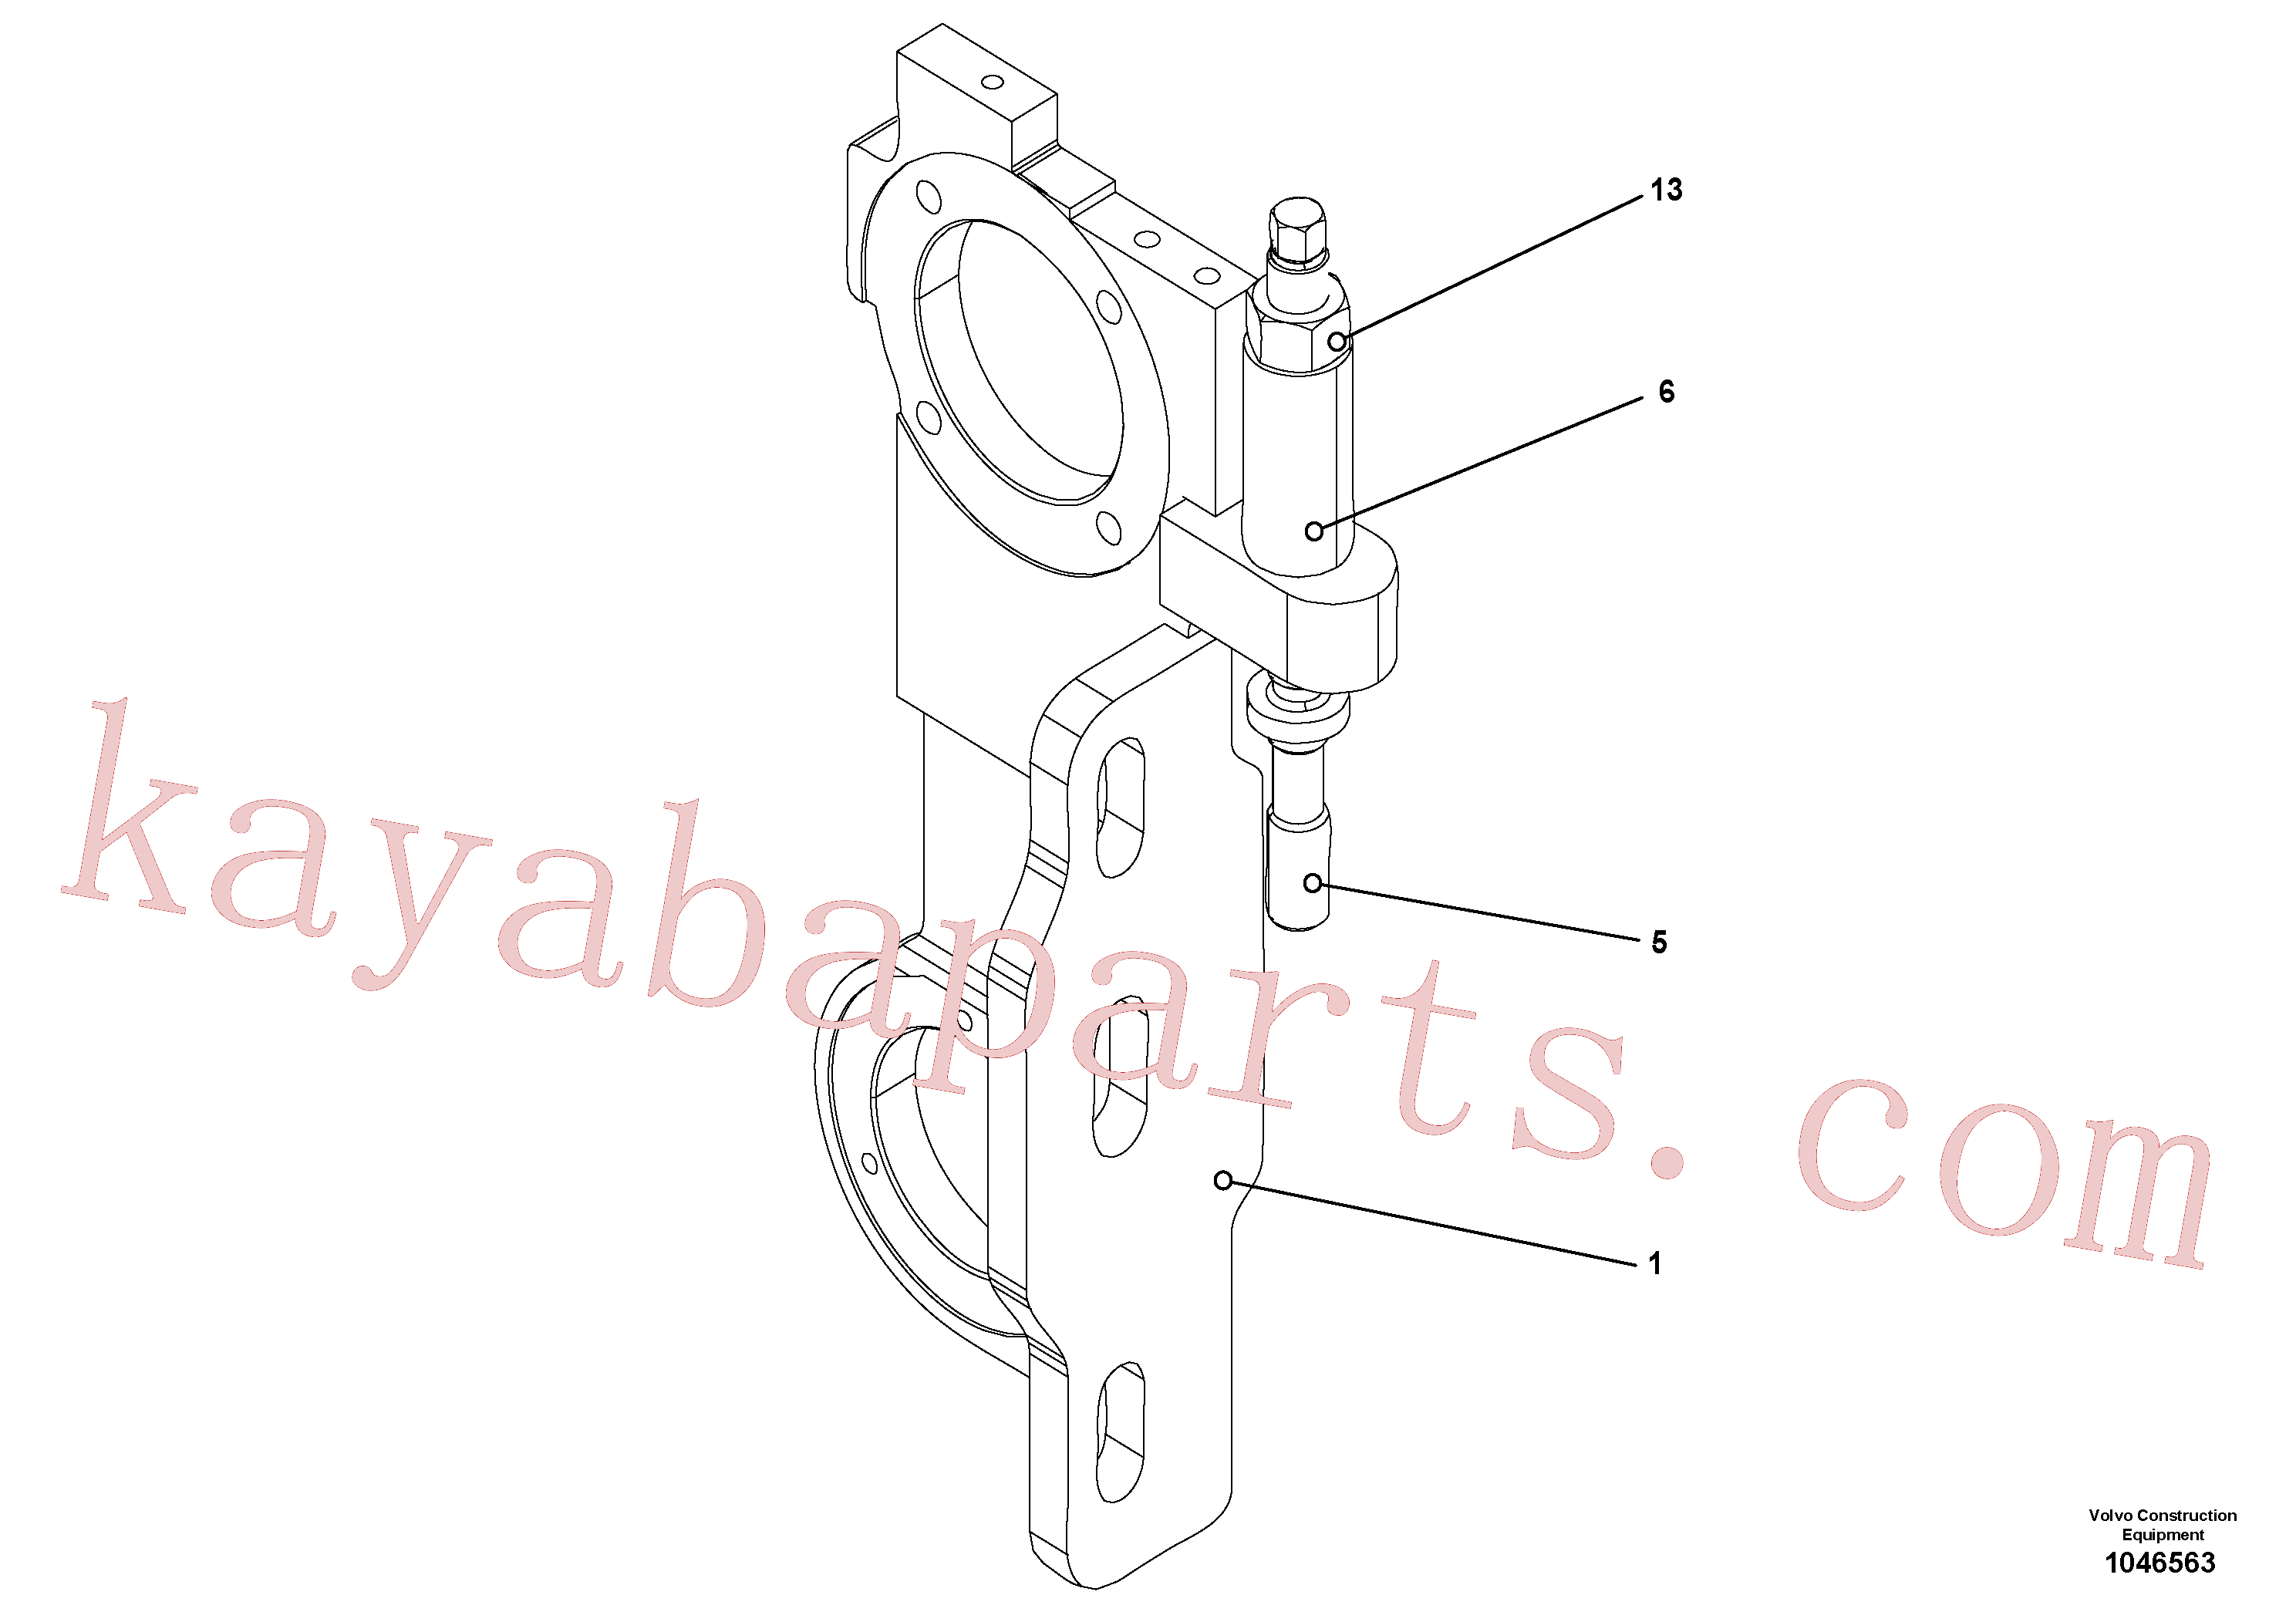 RM56294747 for Volvo Mechanical screed holder for extandable screed, Mechanical screed holder for extendable screed(1046563 assembly)